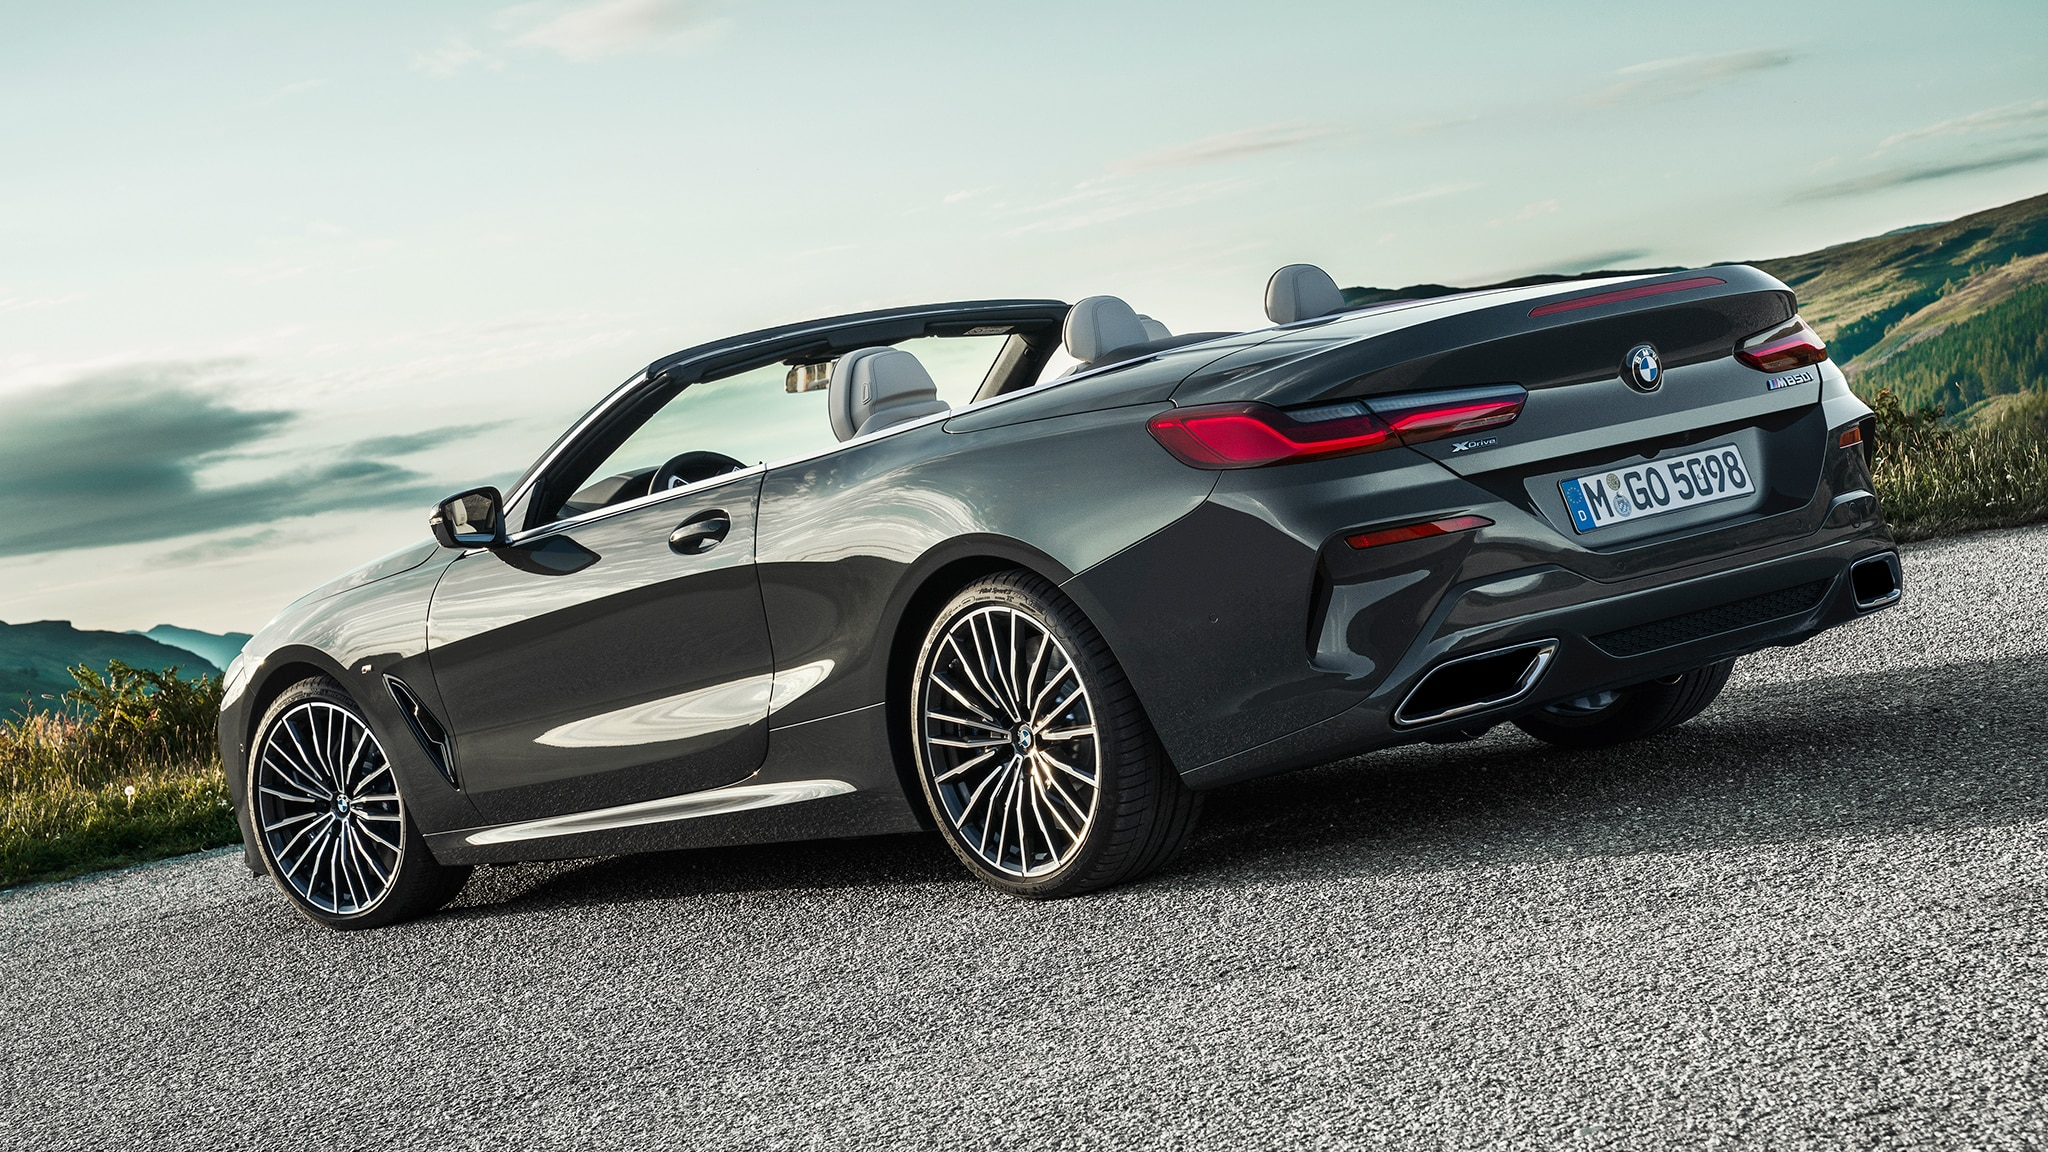 2019 BMW M850i Convertible Rear Side View At Angle